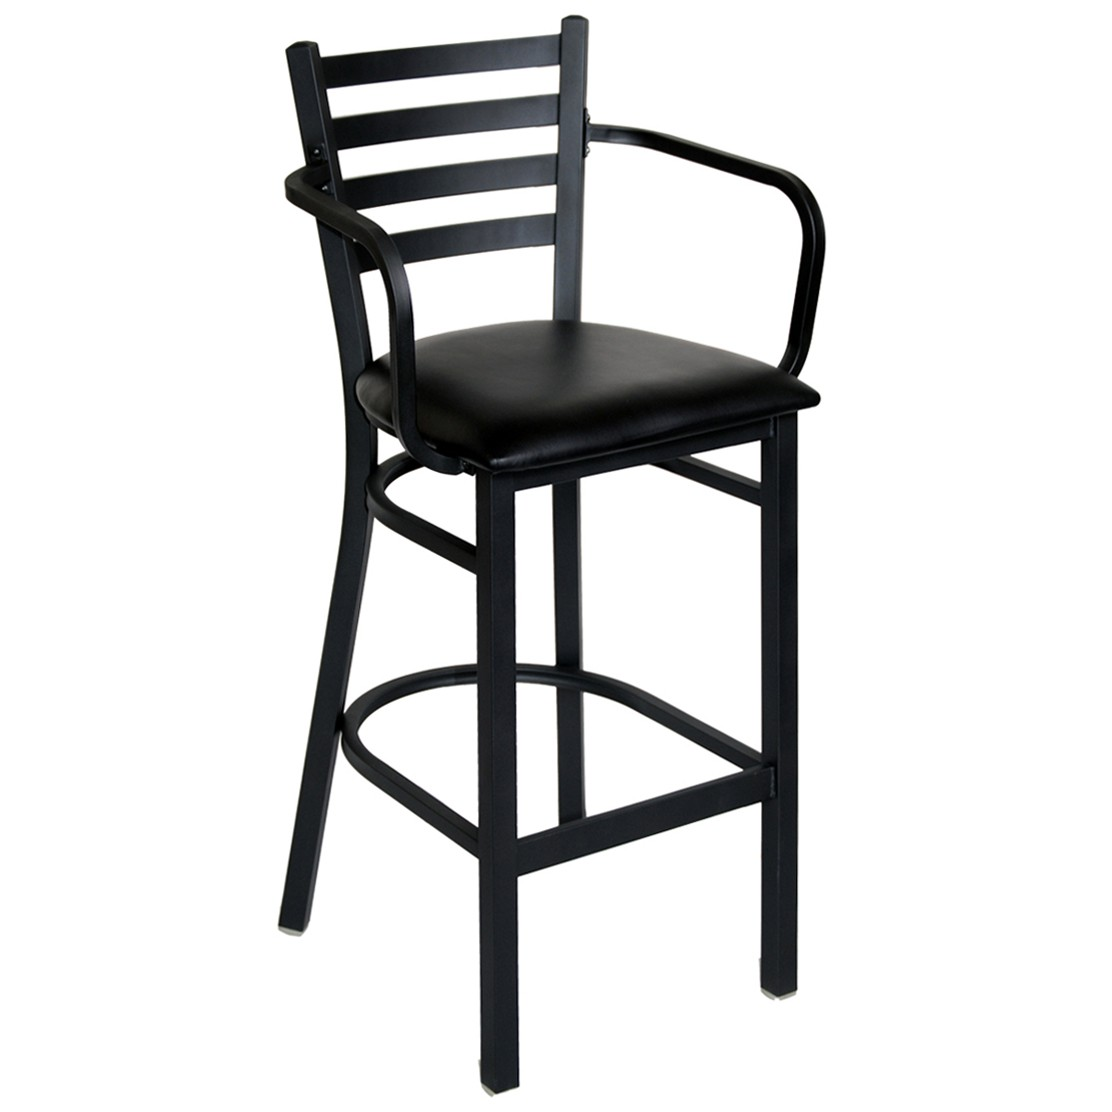 Belham Living Hutton Leather Backless Saddle Counter Stool: Backless Leather Counter Height Stools.GAME CHAIR